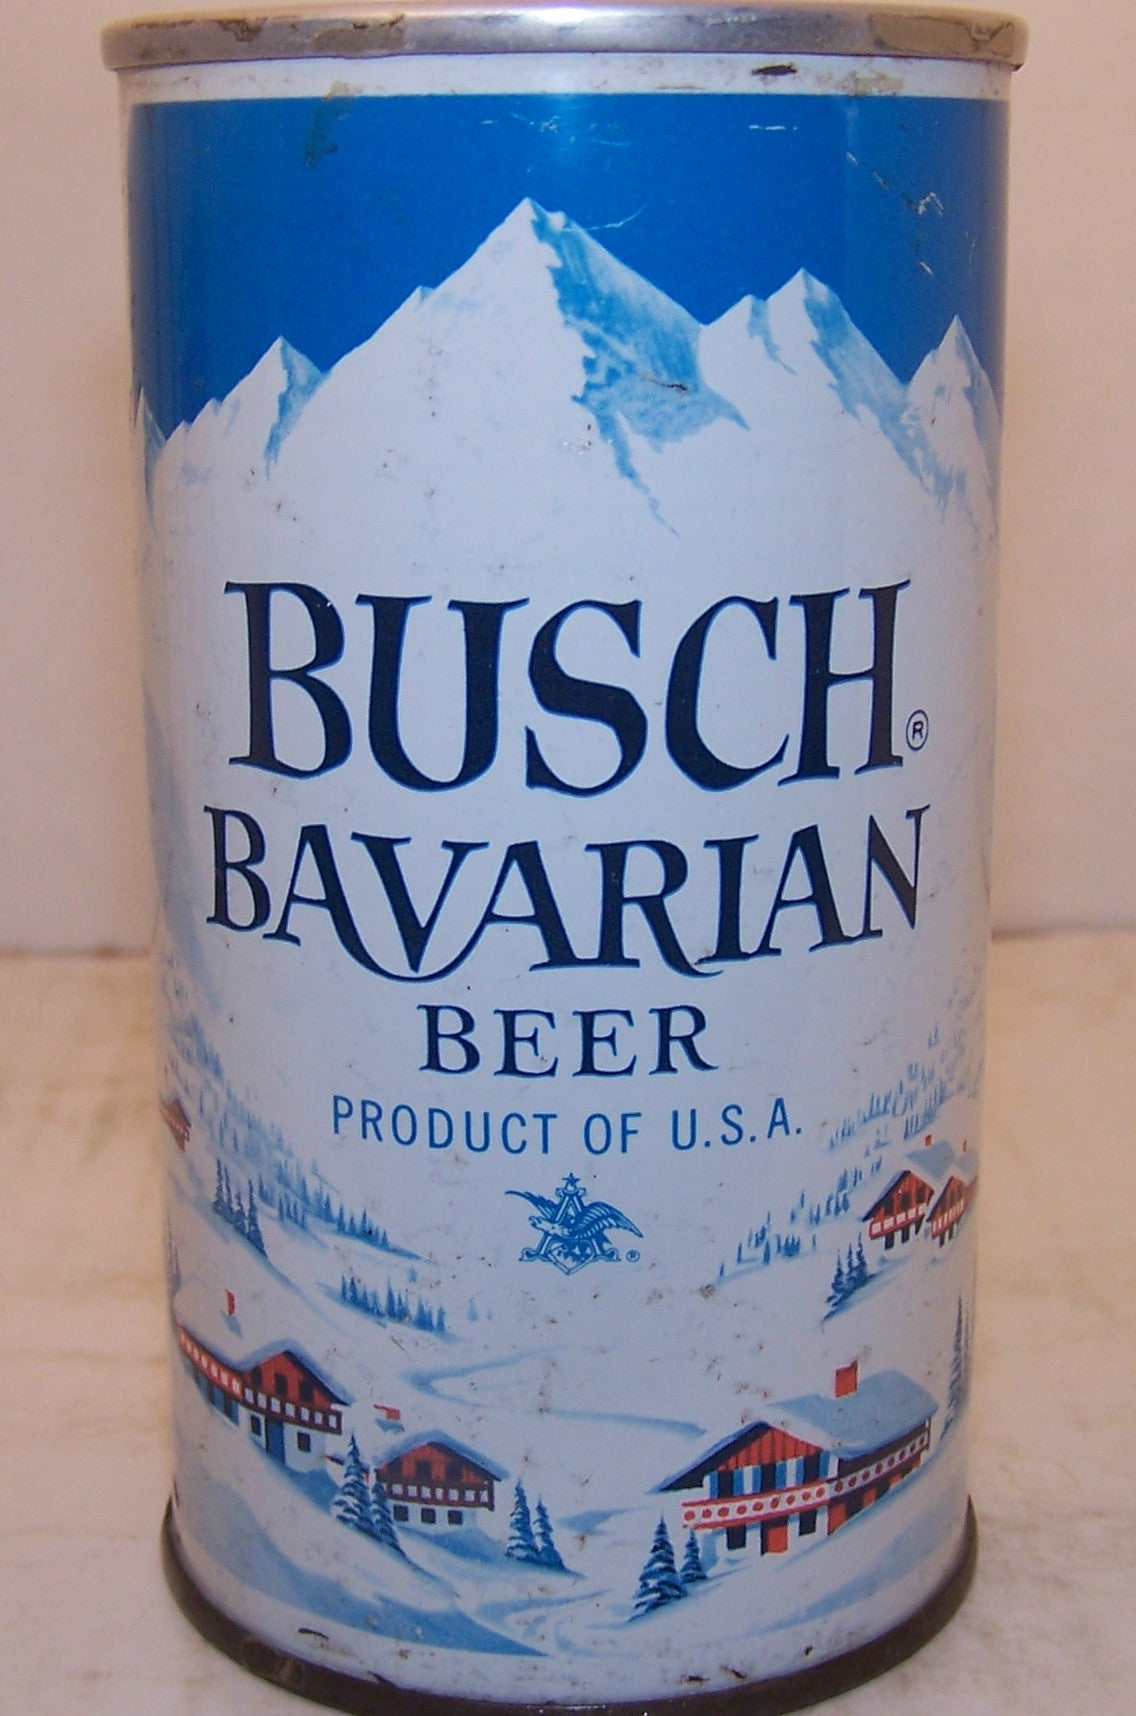 Busch Bavarian Beer, USBC II 52-39 Four Cities, Grade 1- Sold on 10/10/15